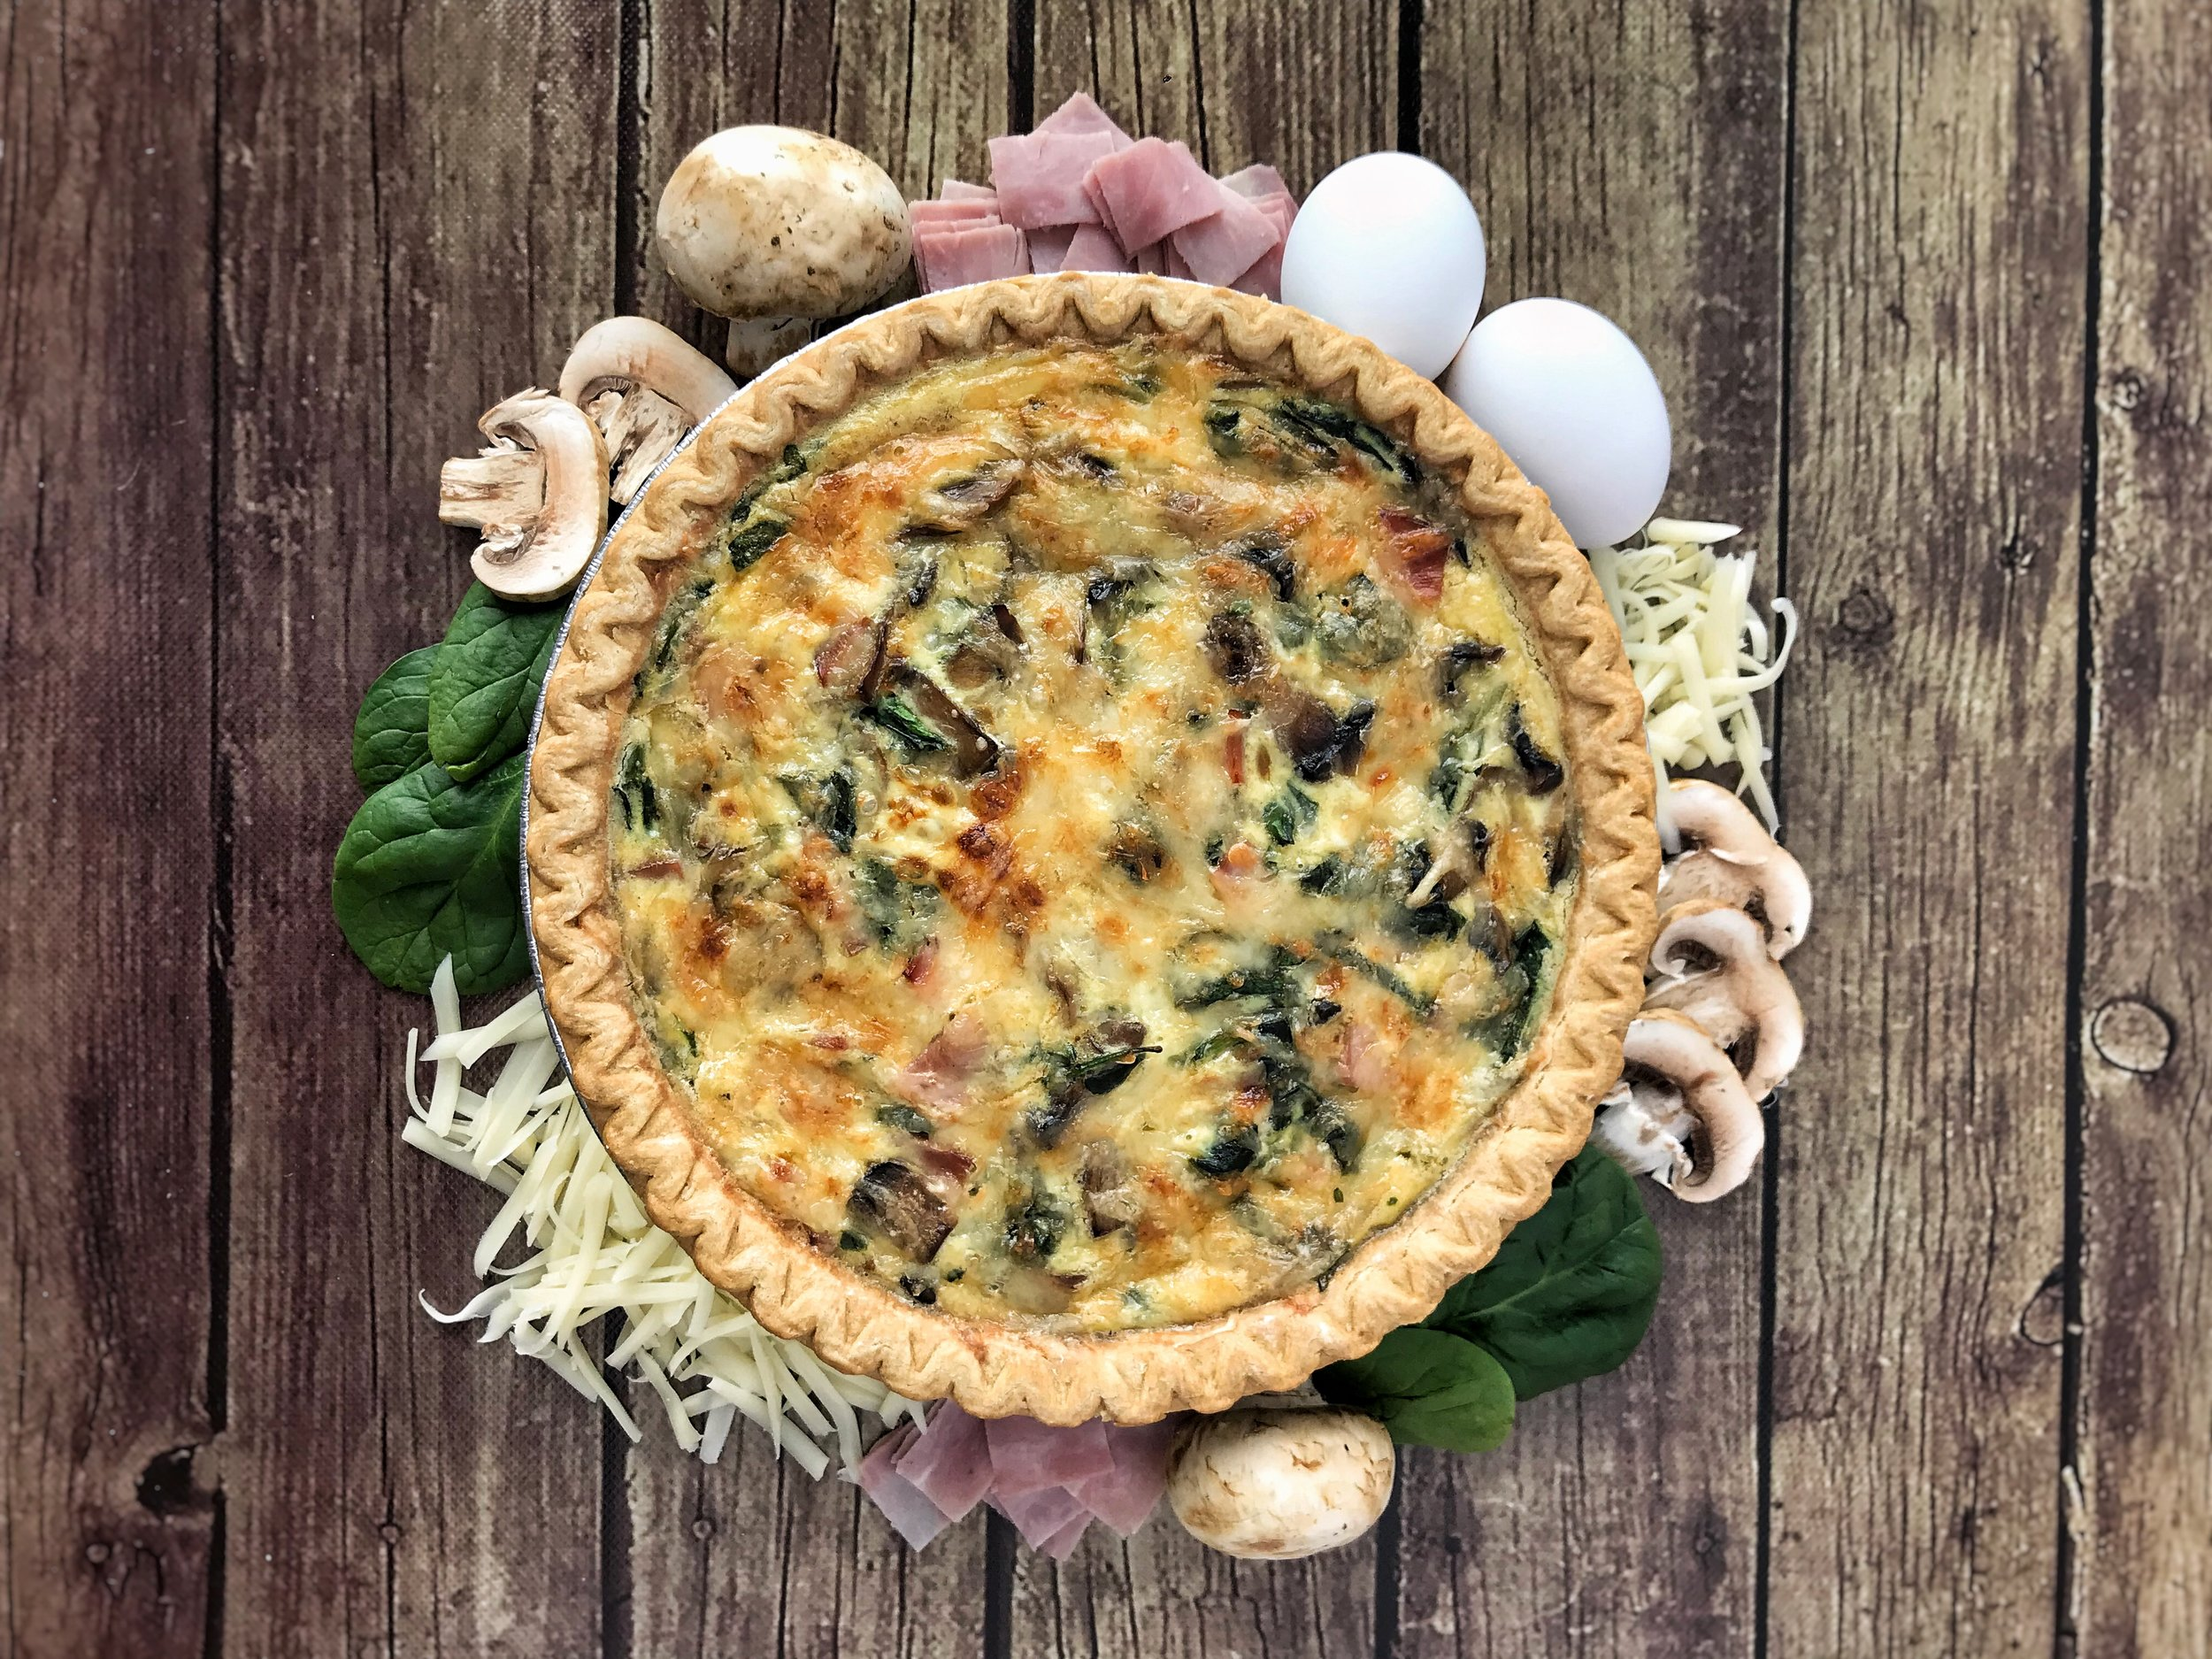 SPINACH, MUSHROOM, AND HAM QUICHE